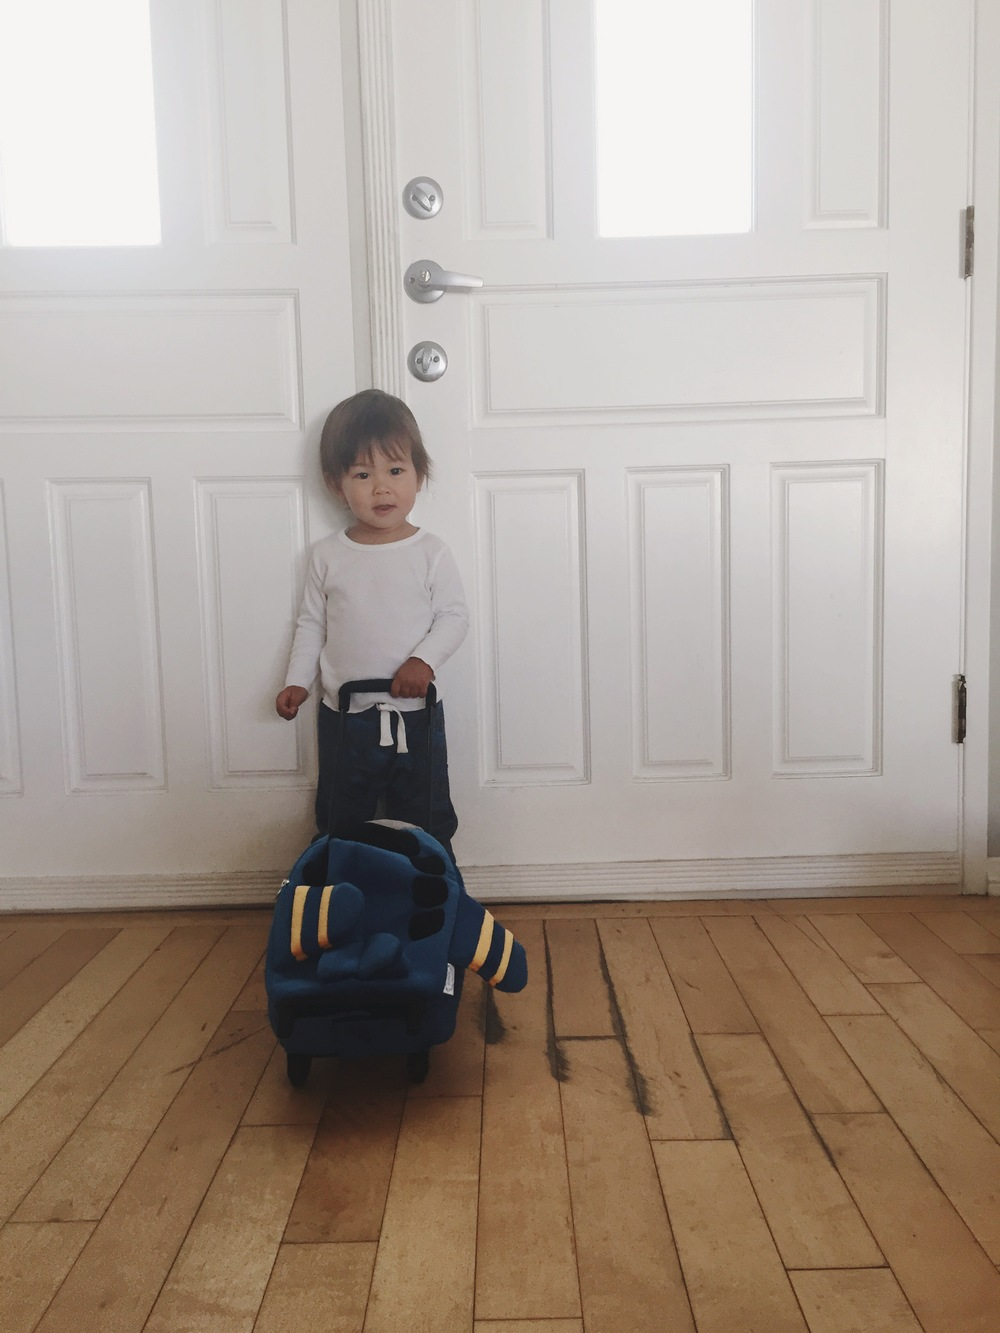 Jack and his airplane suitcase